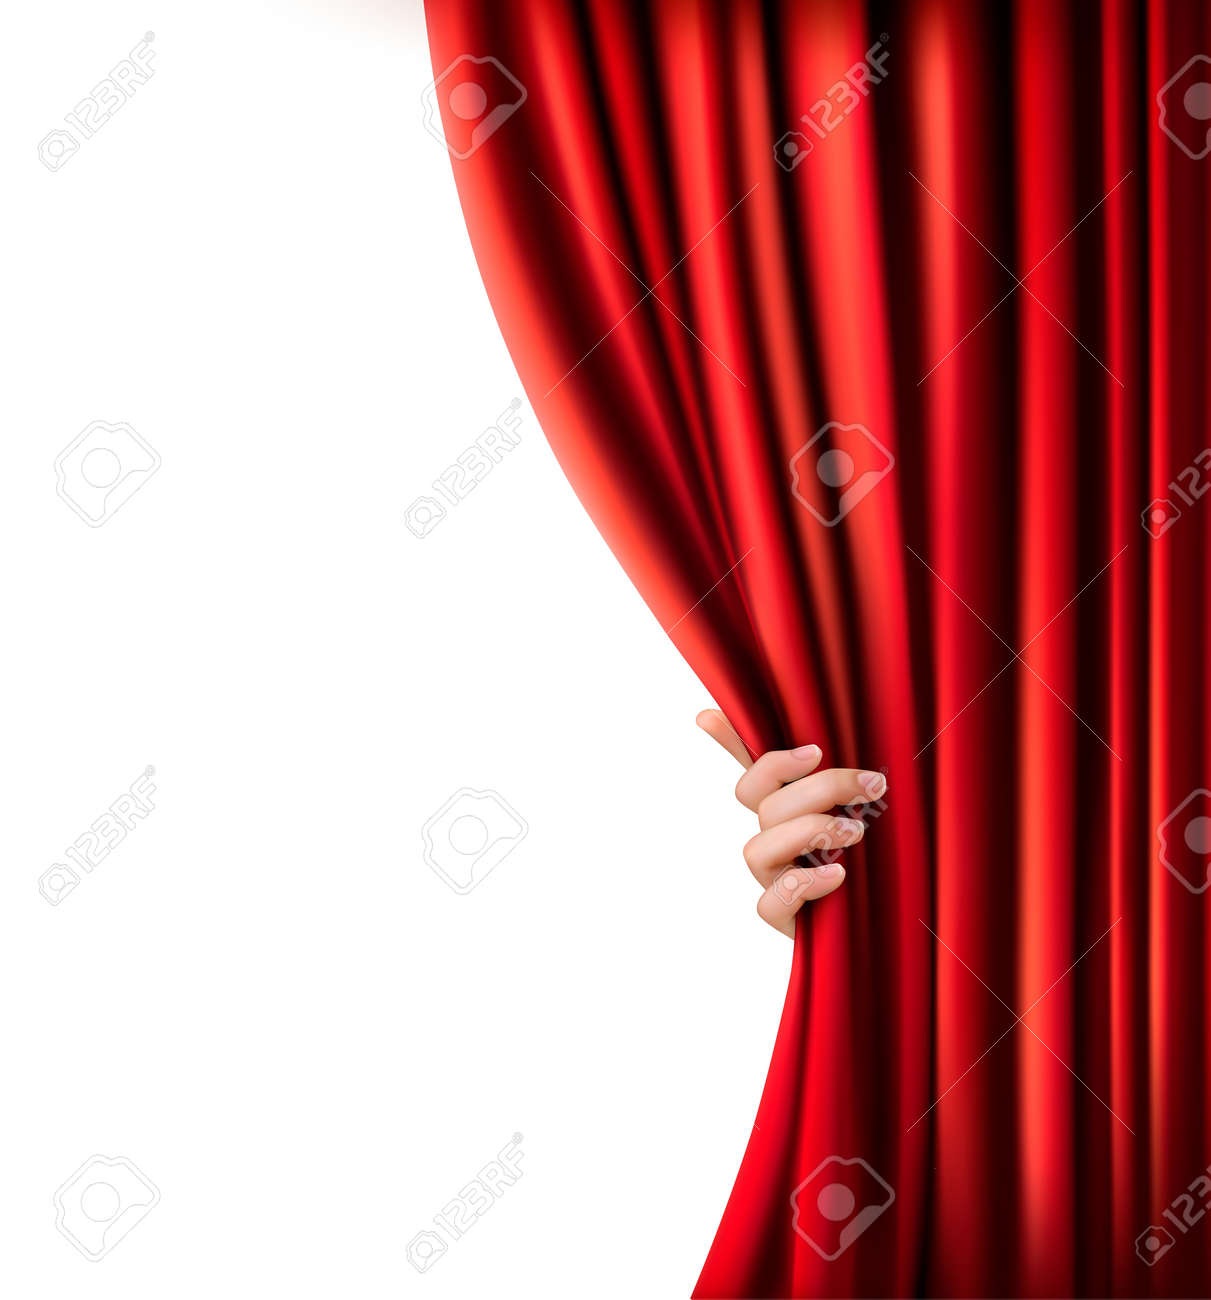 Theater curtains download free vector art stock graphics amp images - Theatre Curtain Background With Red Velvet Curtain And Hand